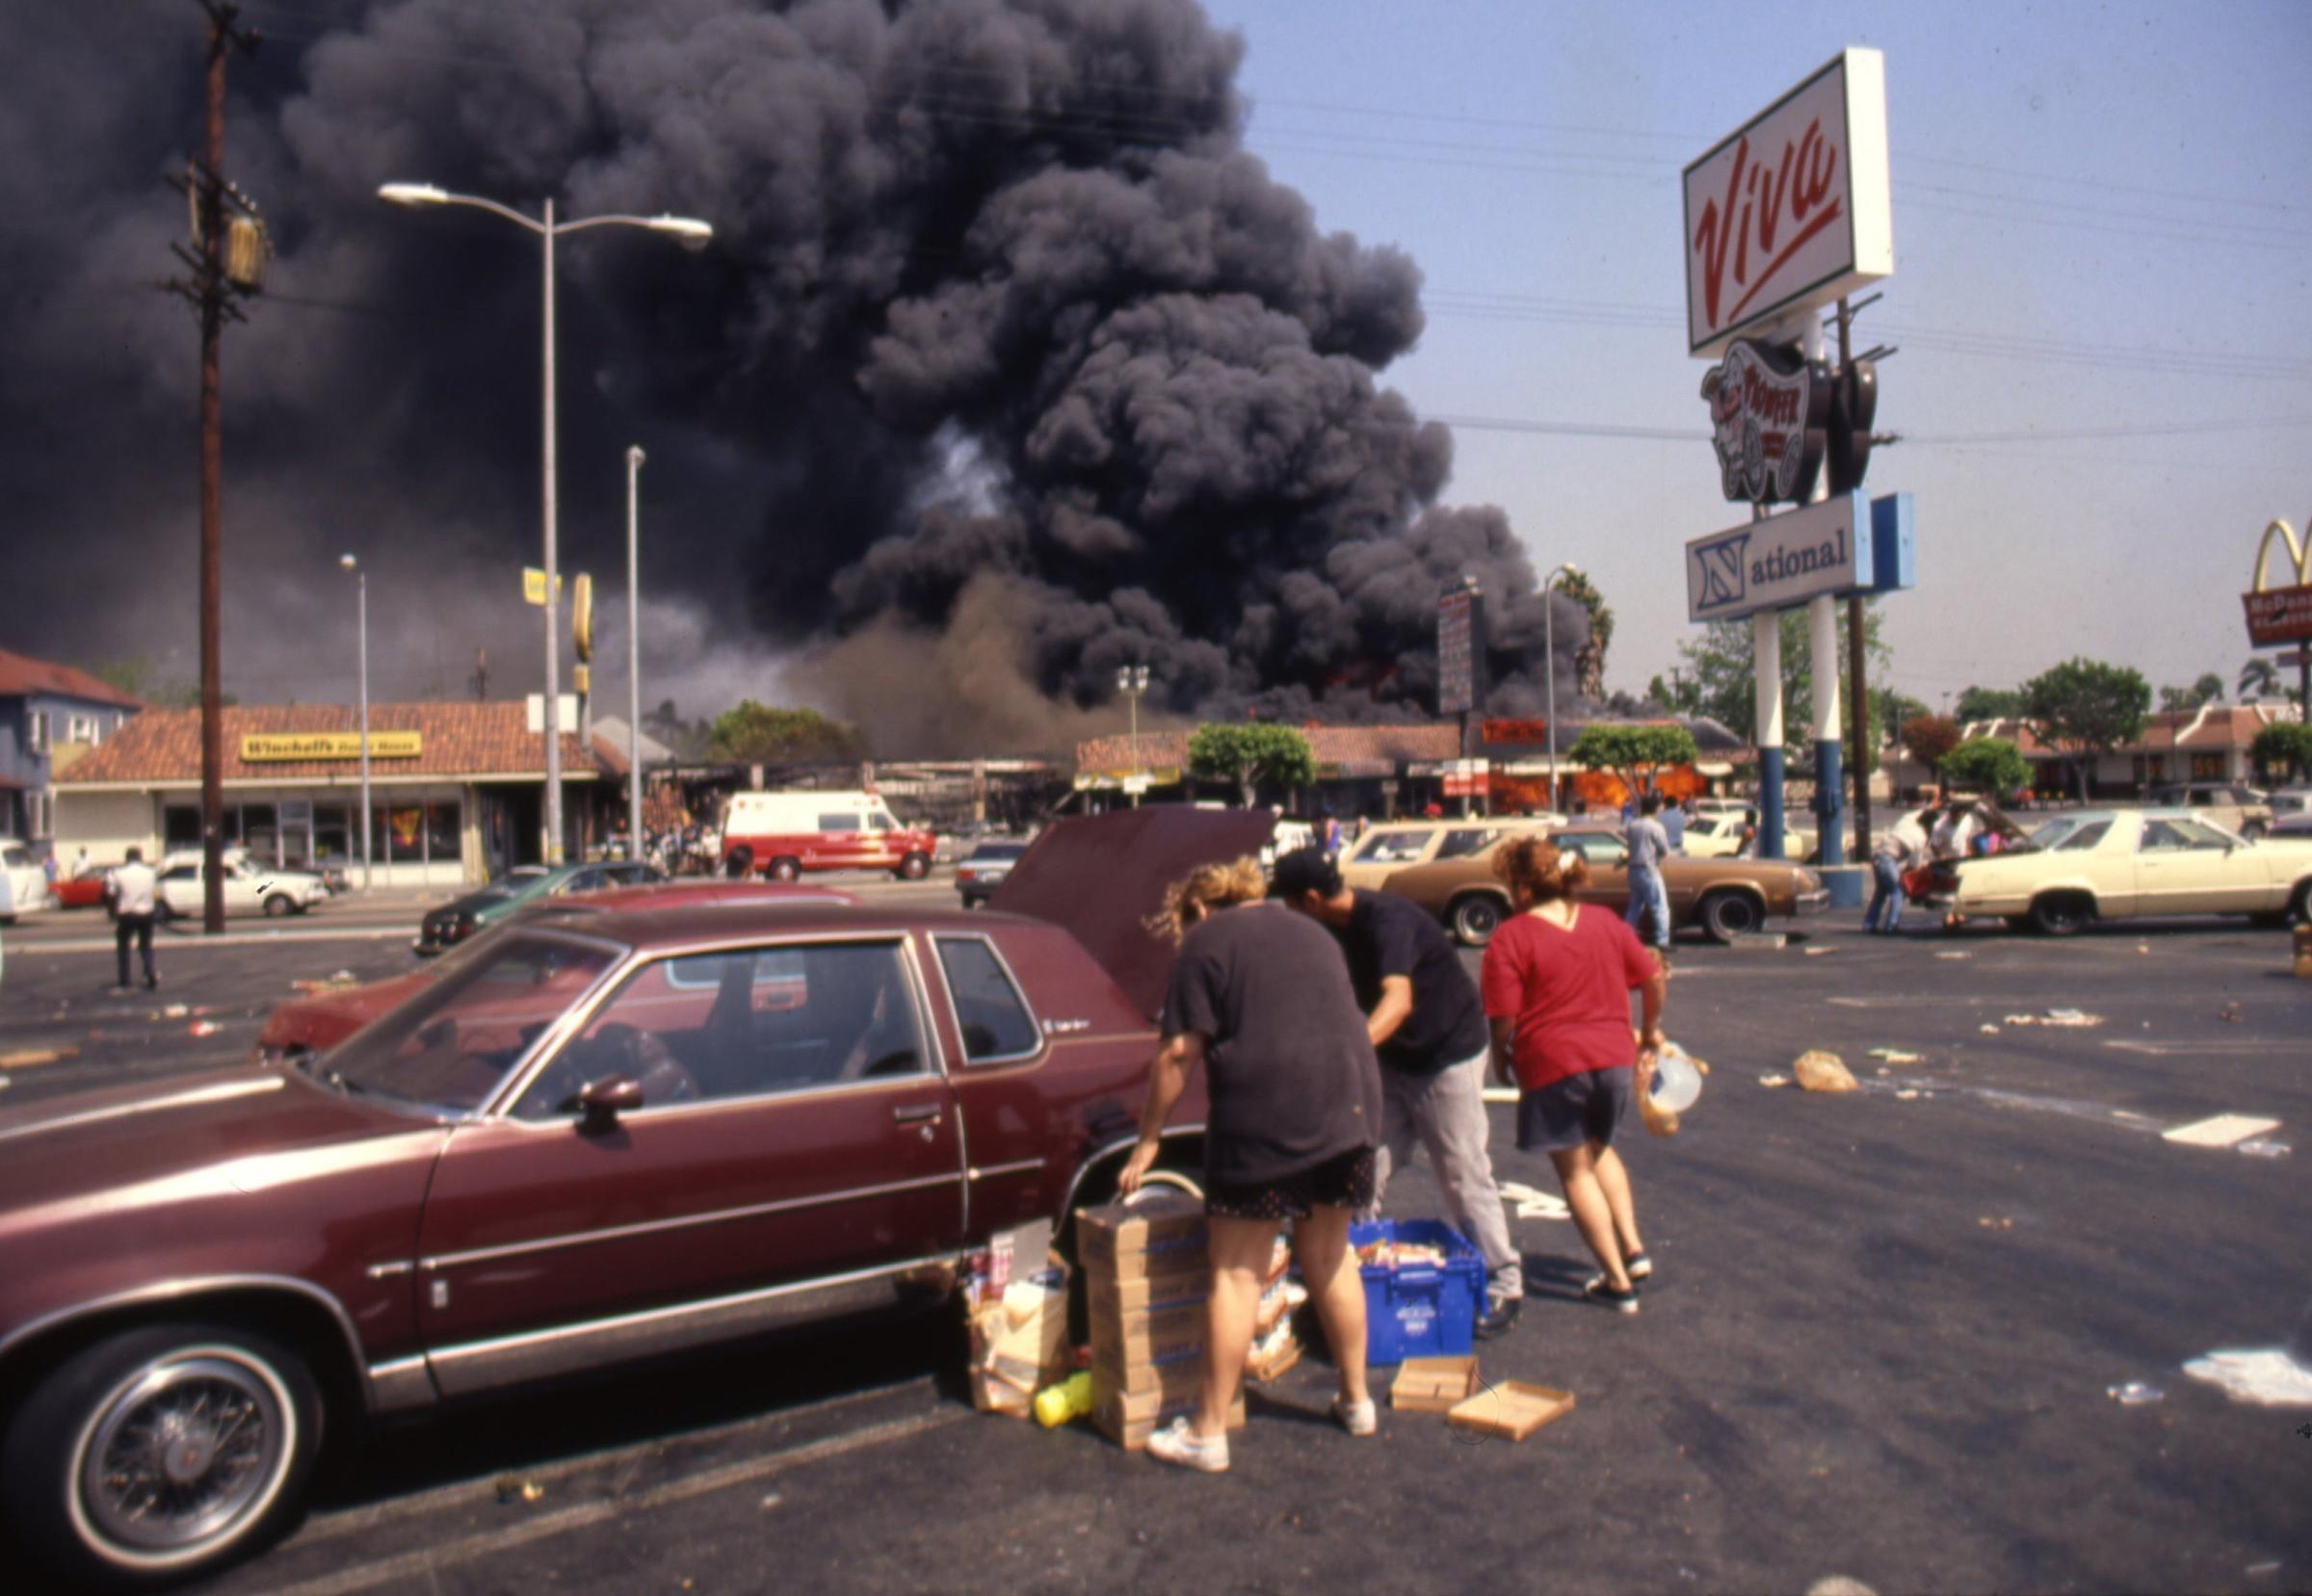 an analysis of the rodney king case and the los angeles riot in 1992 Rodney king was released without charges, and on march 15 sergeant stacey koon and officers powell, wind, and briseno were indicted by a los angeles grand jury in connection with the beating.